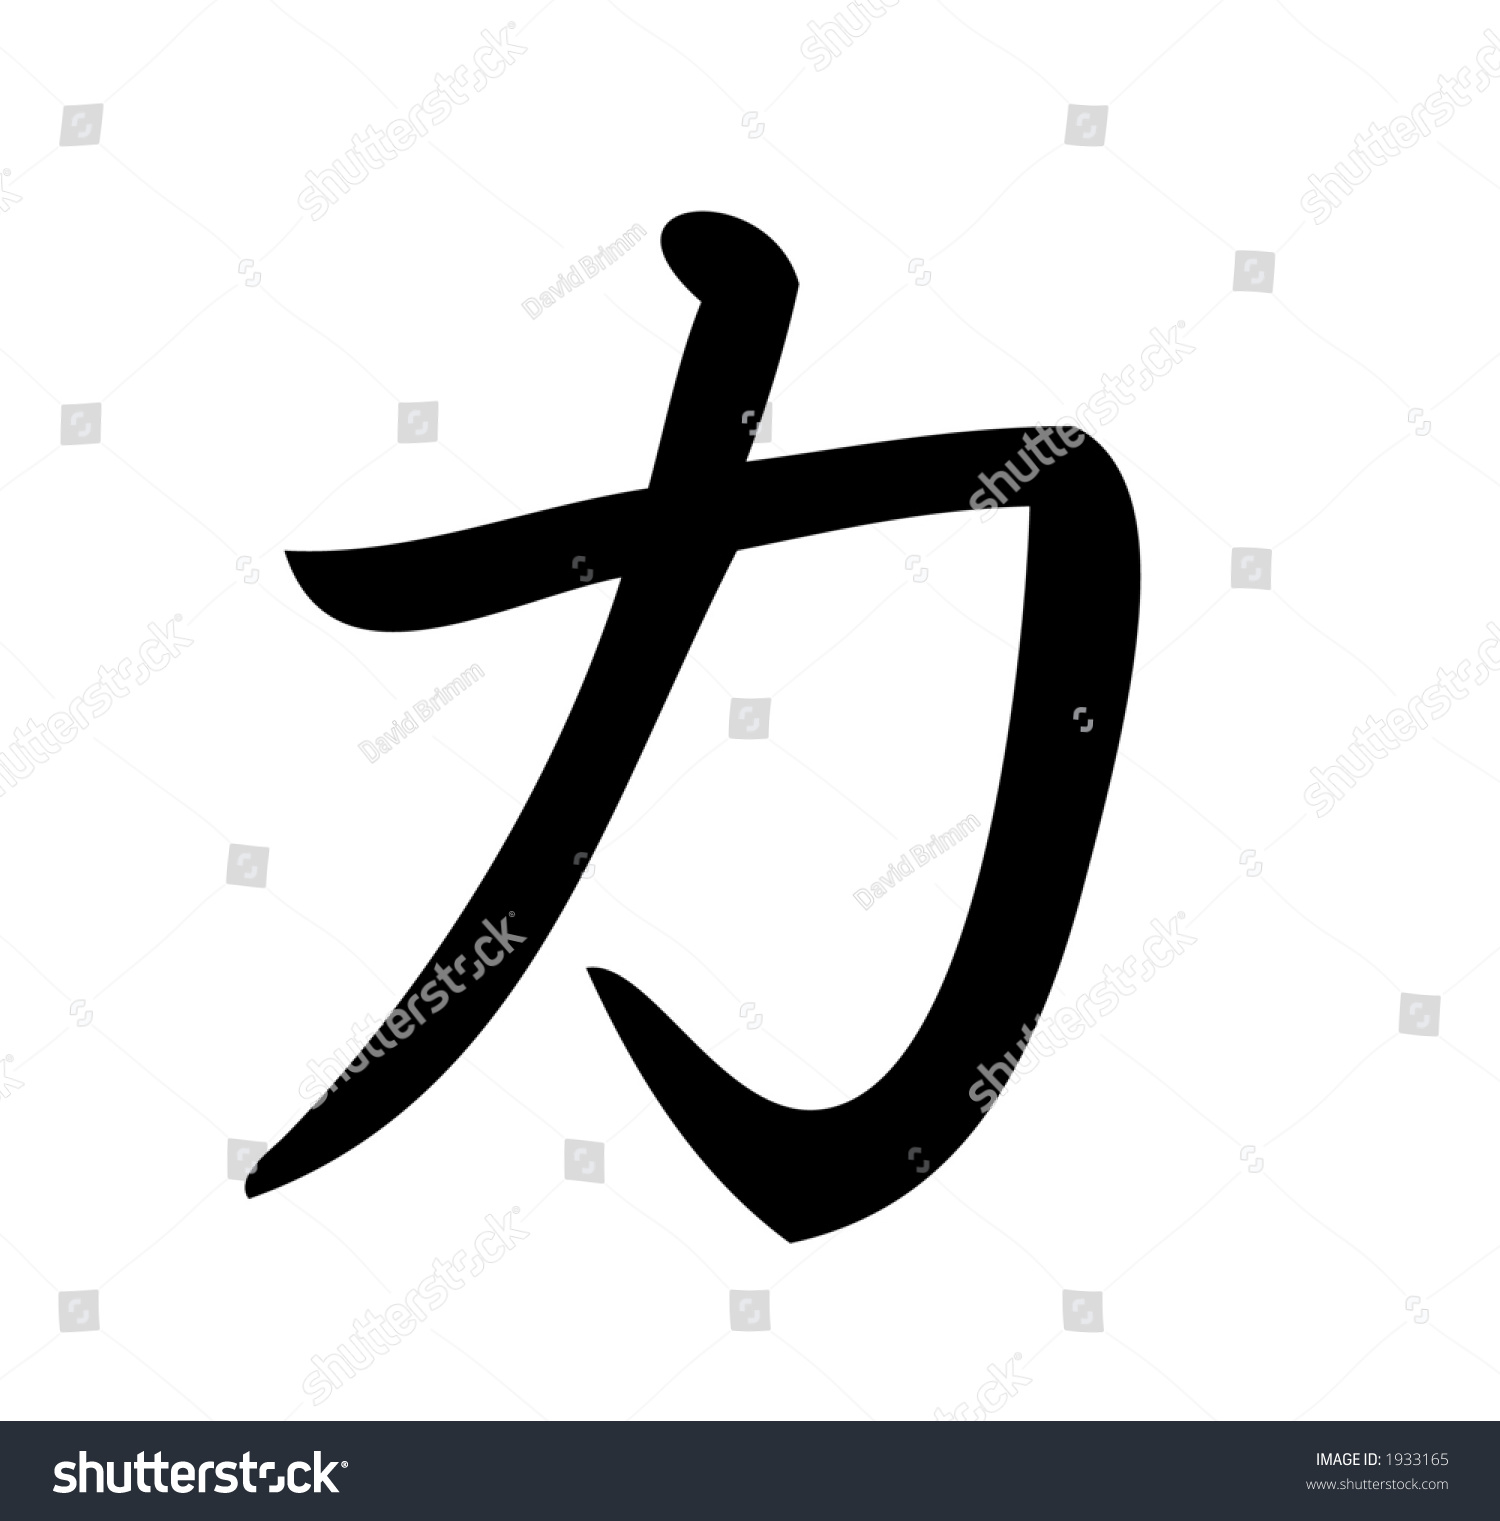 Kanji character power force strength kanji stock illustration kanji character for power force strength kanji one of three scripts biocorpaavc